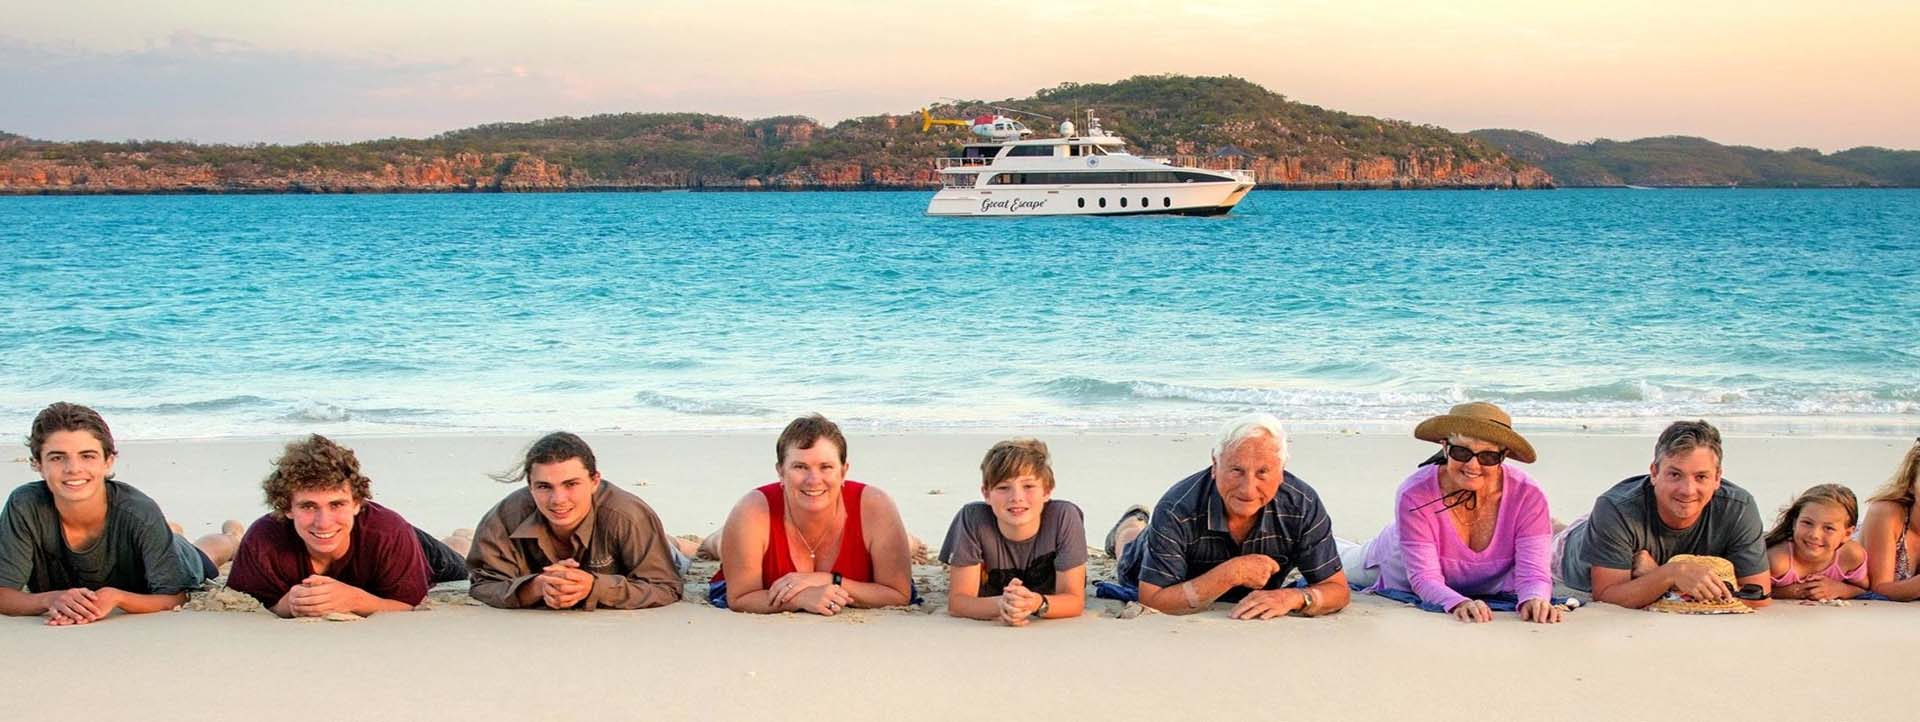 GREAT ESCAPE CRUISE DATES kimberley cruise family on beach